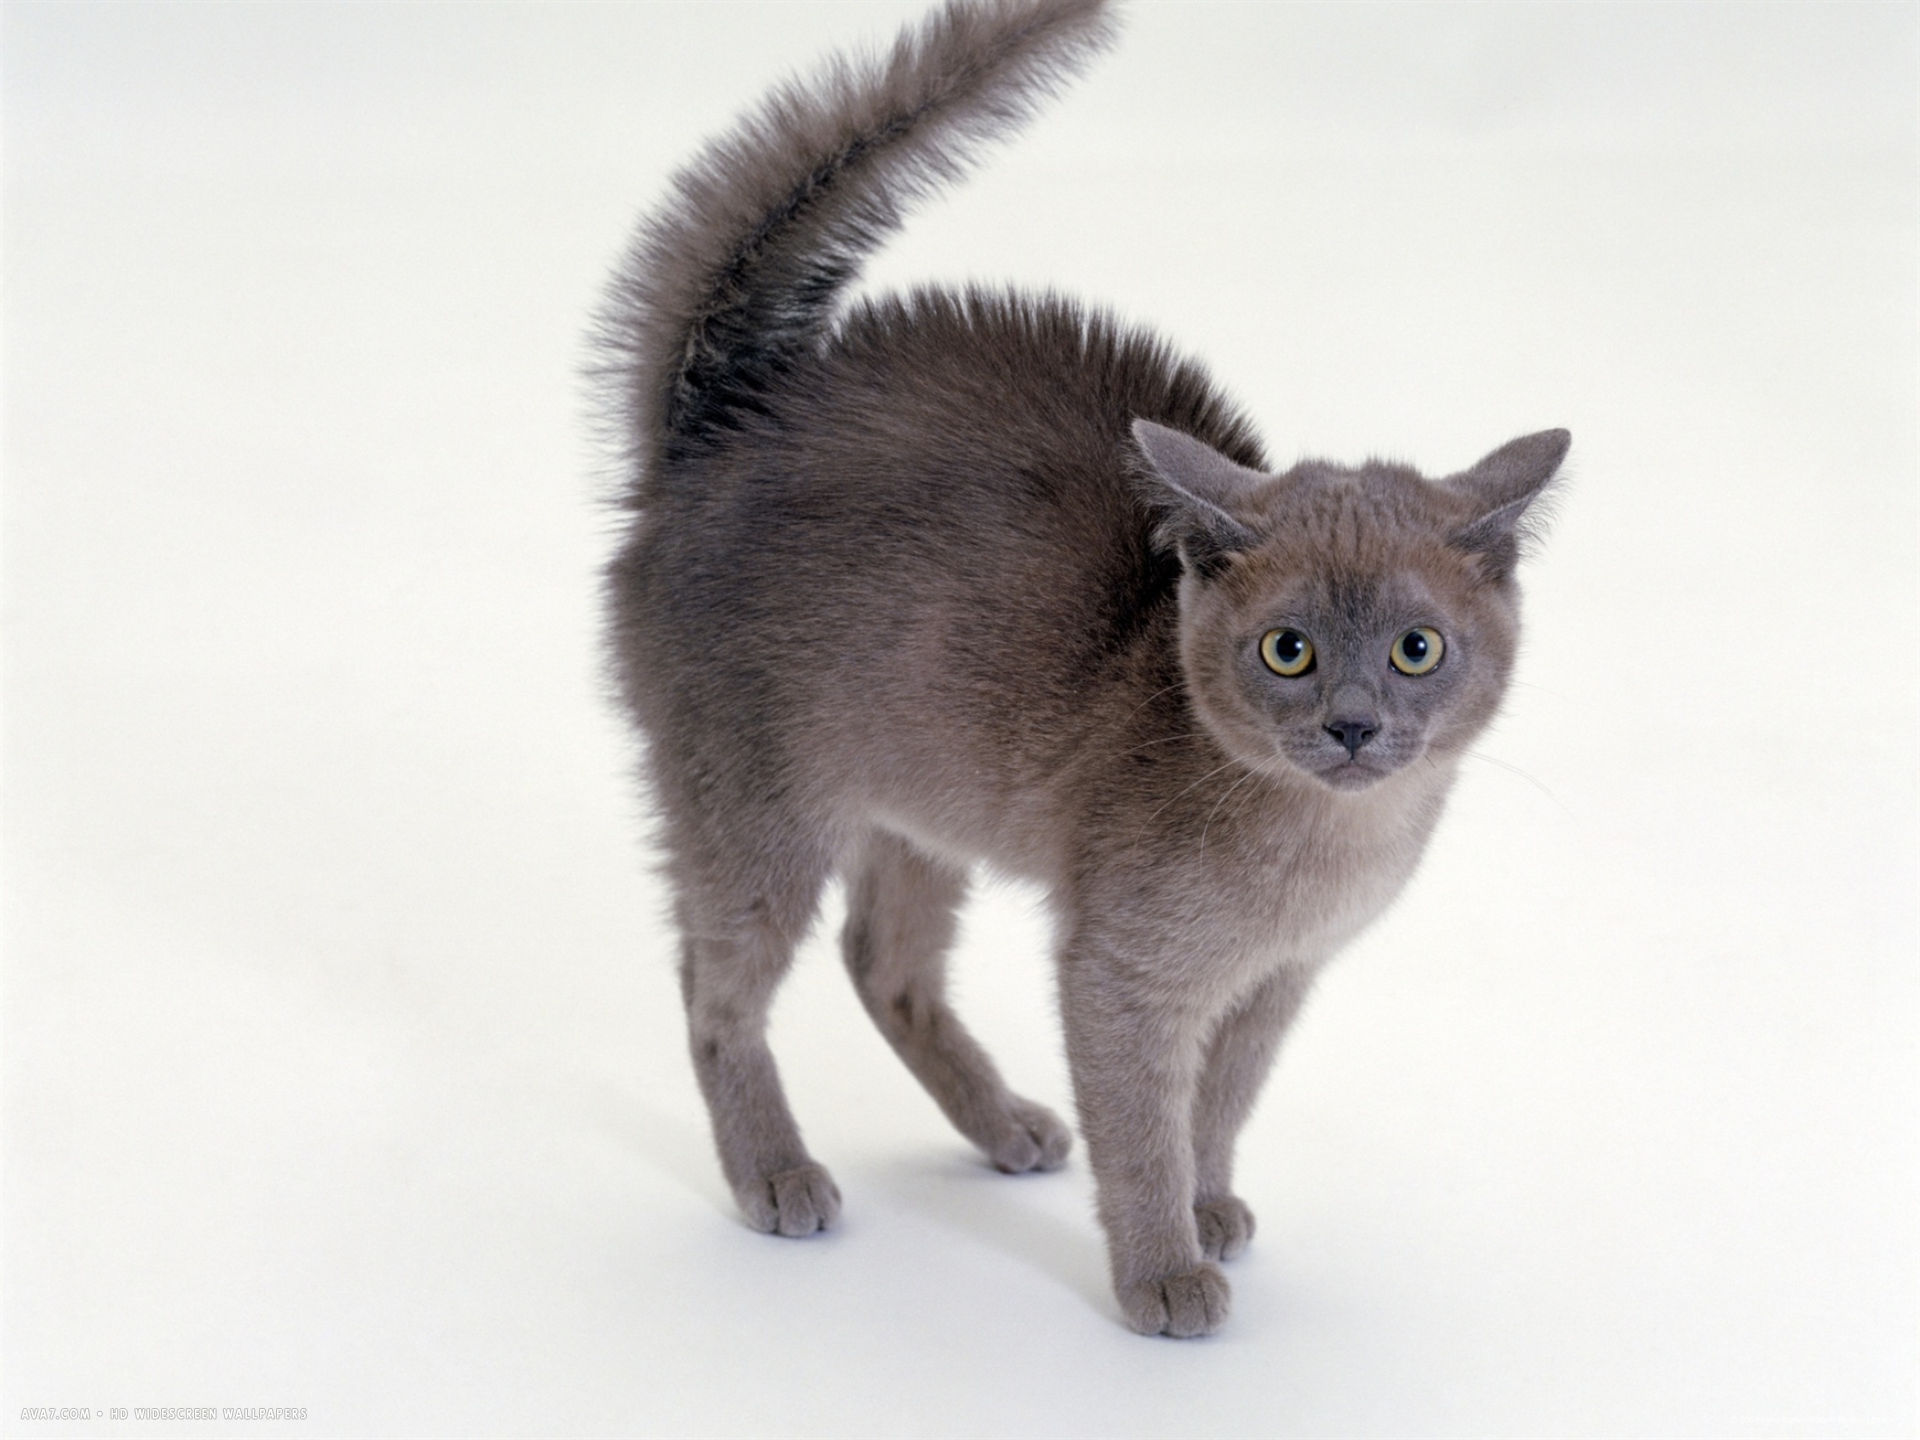 Cat With A Long Tail Meaning